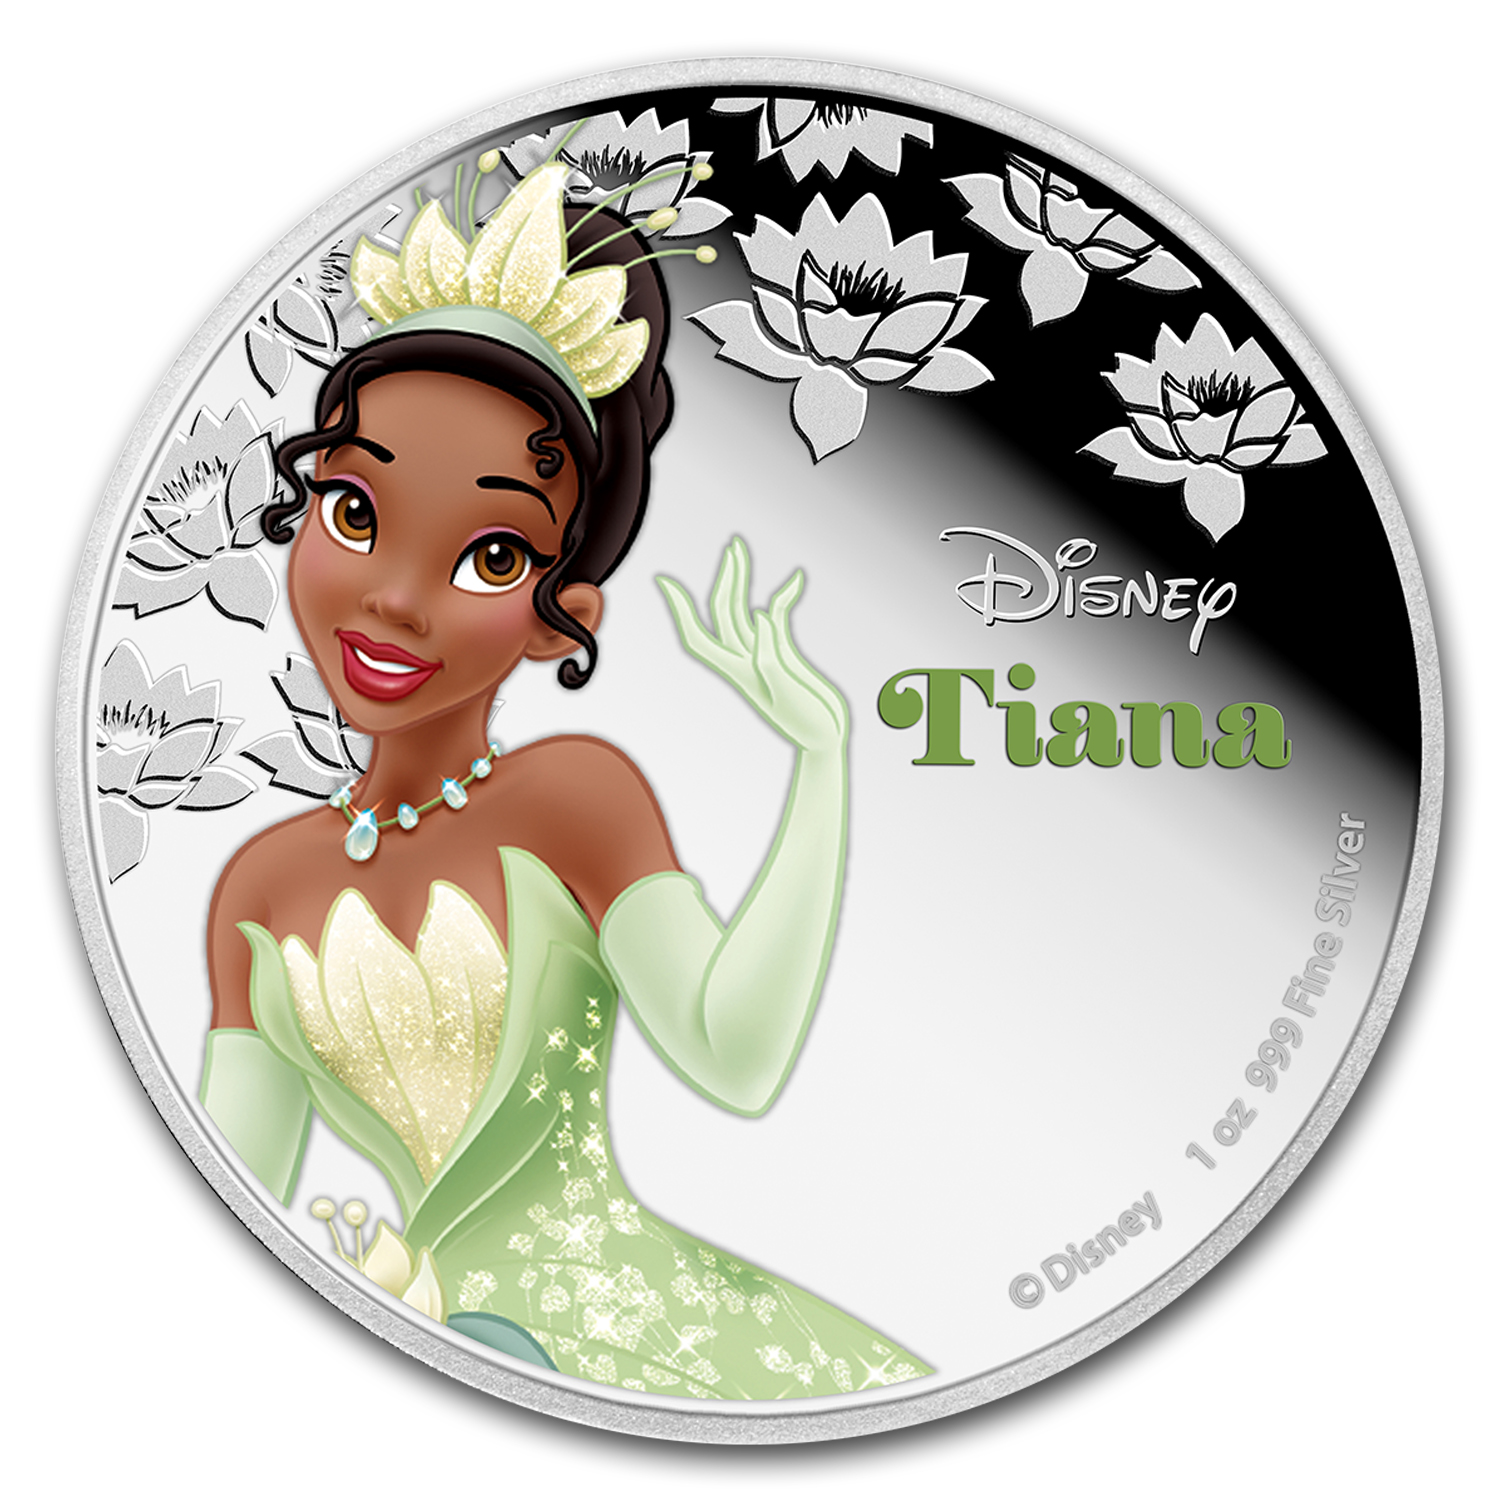 2016 Niue 1 oz Silver $2 Disney Princess Tiana